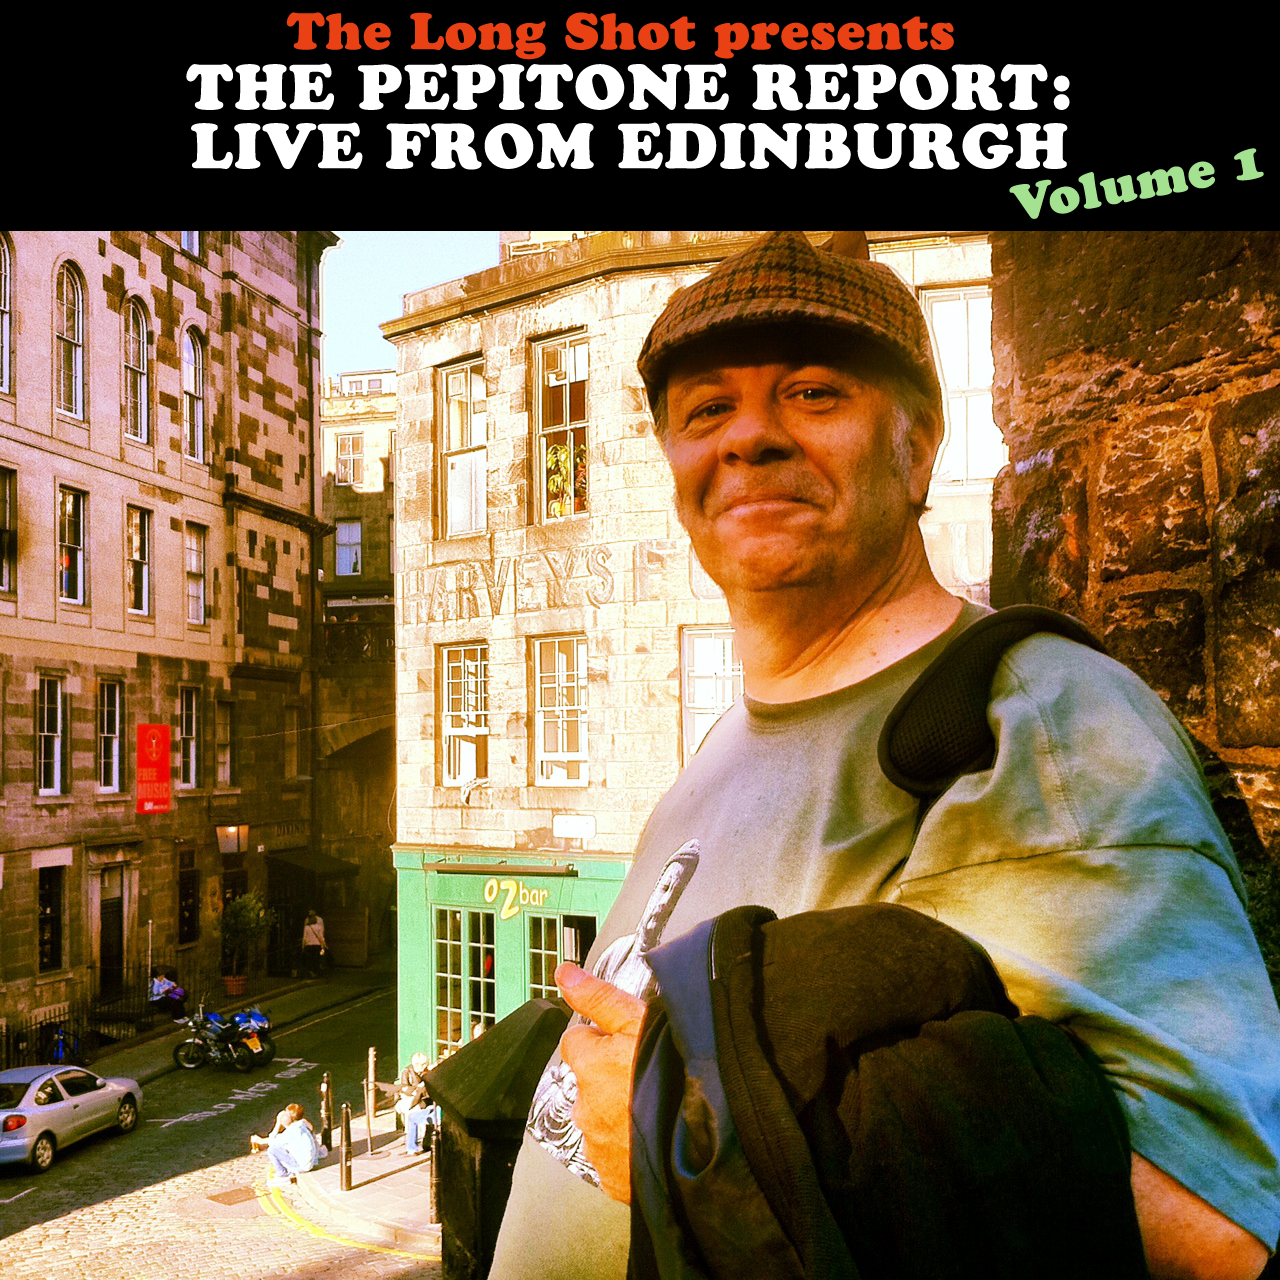 The Pepitone Report: Live from Edinburgh Volume 1